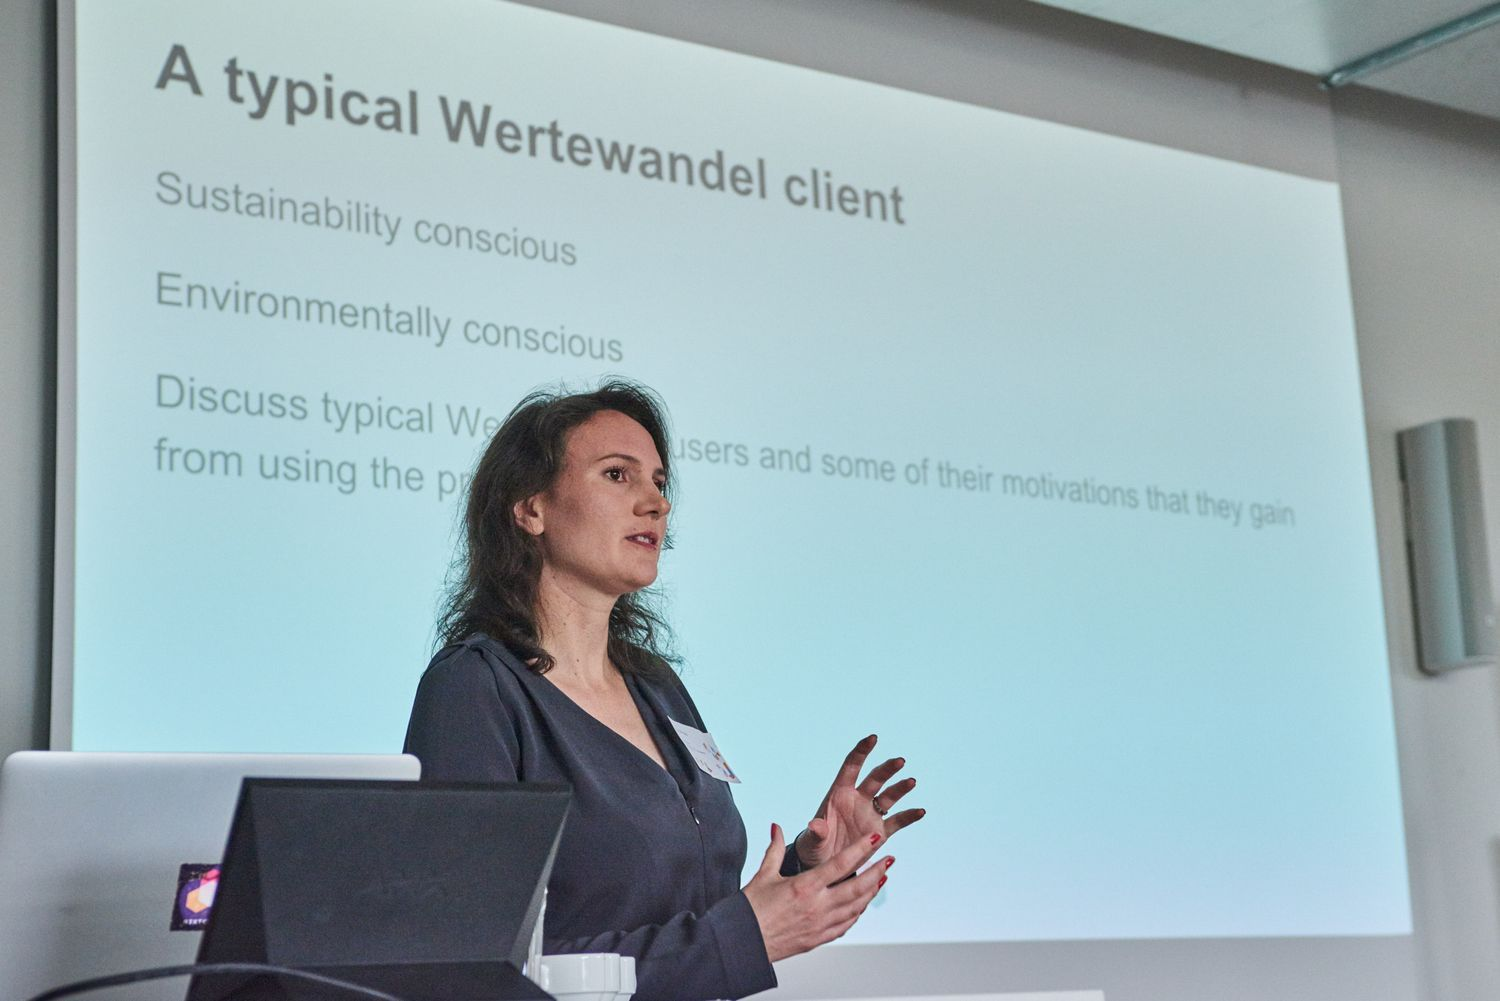 Danielle Reid presenting at Wertewandel workshop